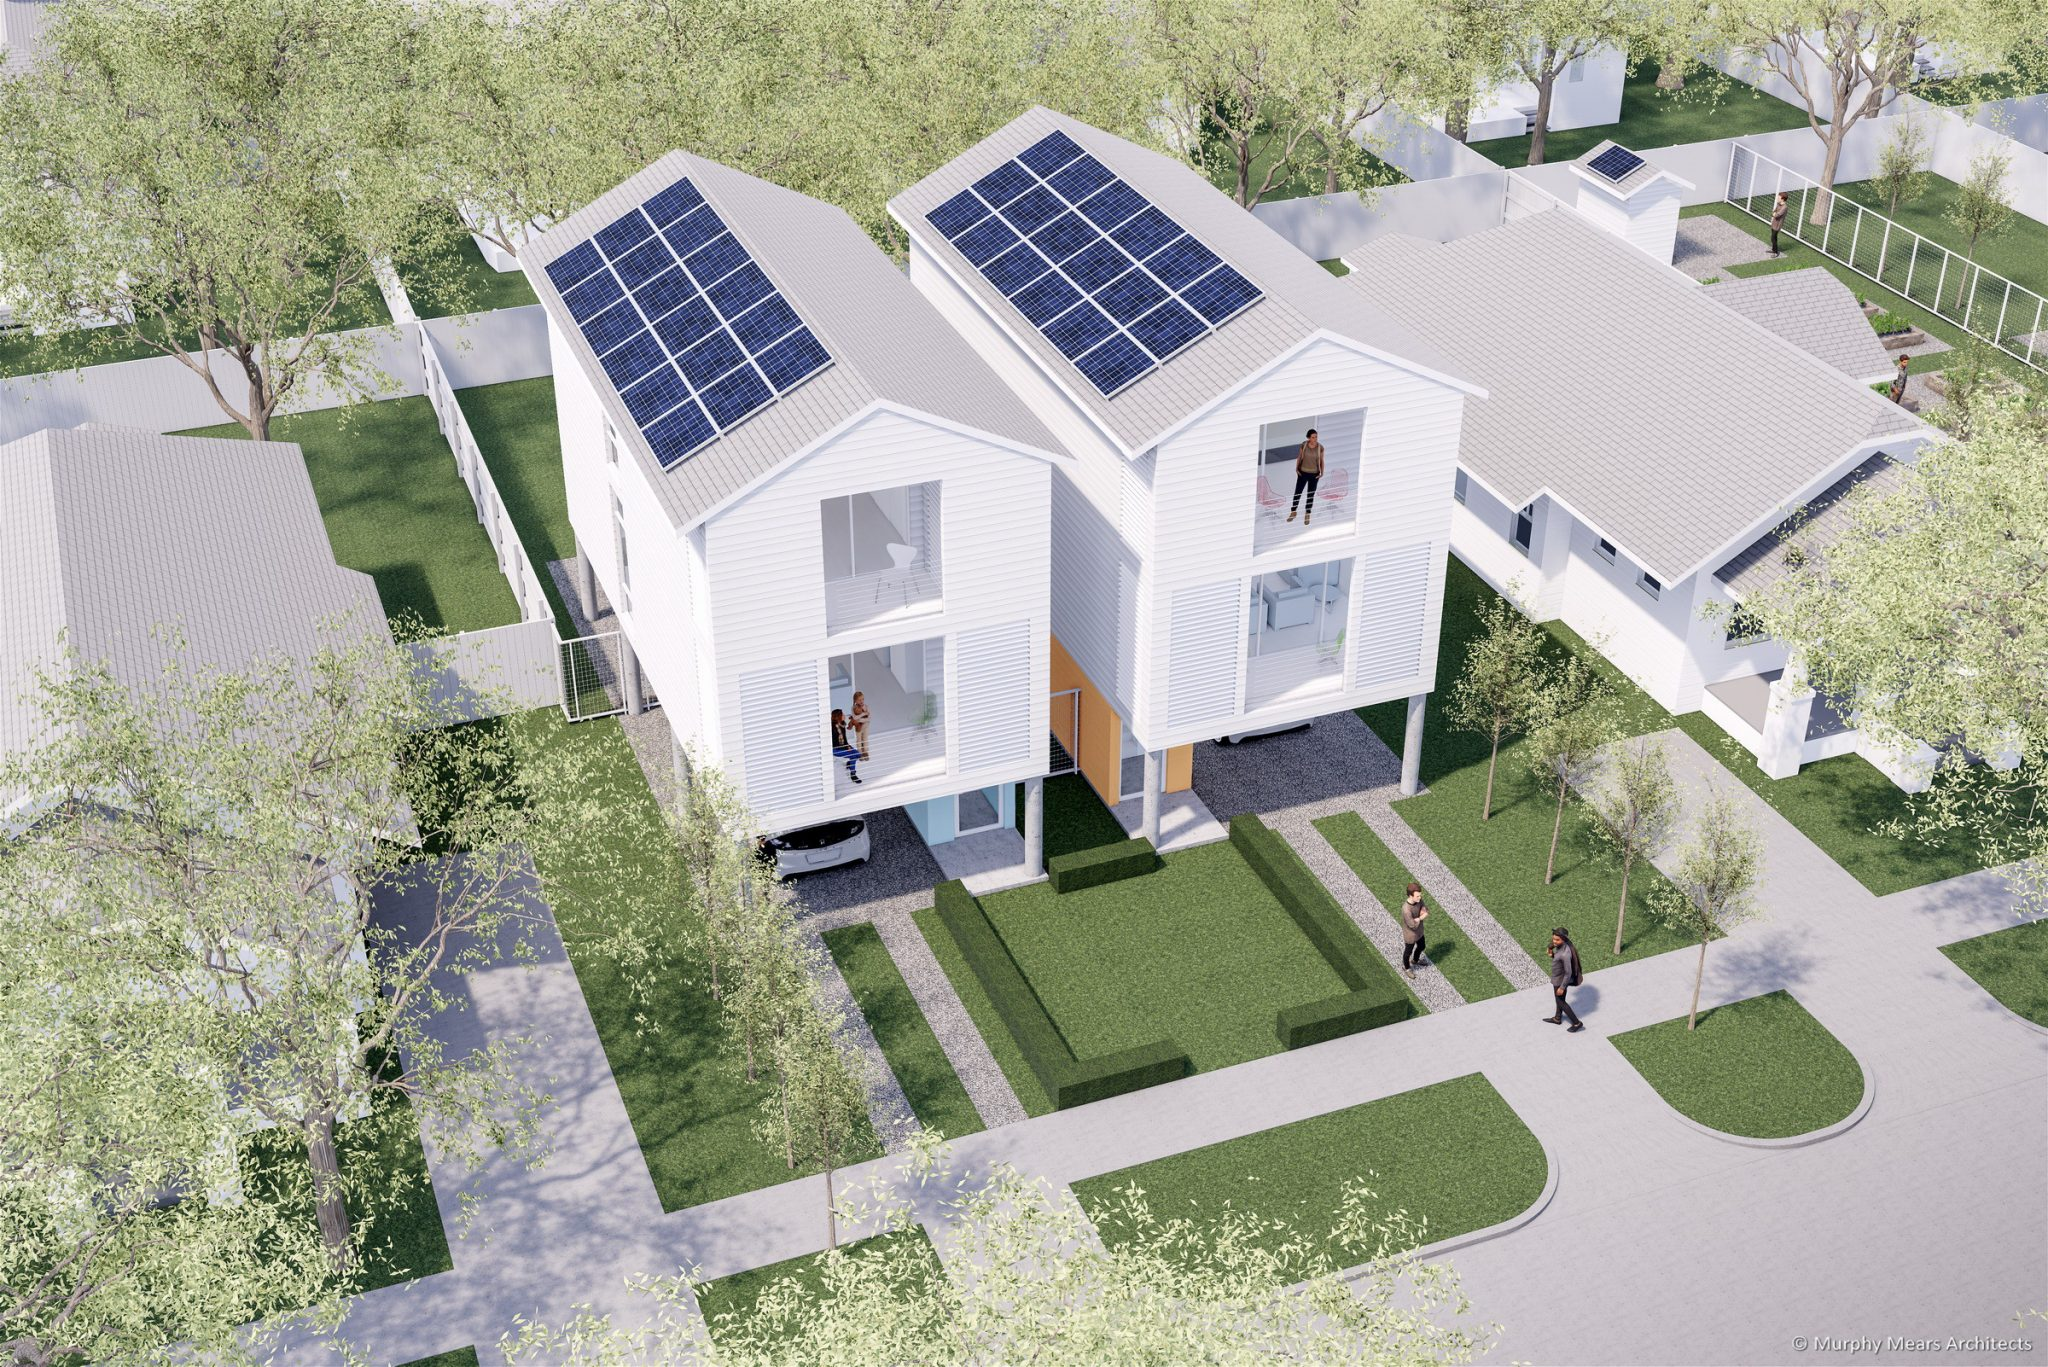 Affordable / Sustainable Housing Competition - City of Houston and AIA - Complete The Community - Two Units with roofs pitched for Solar Panels.